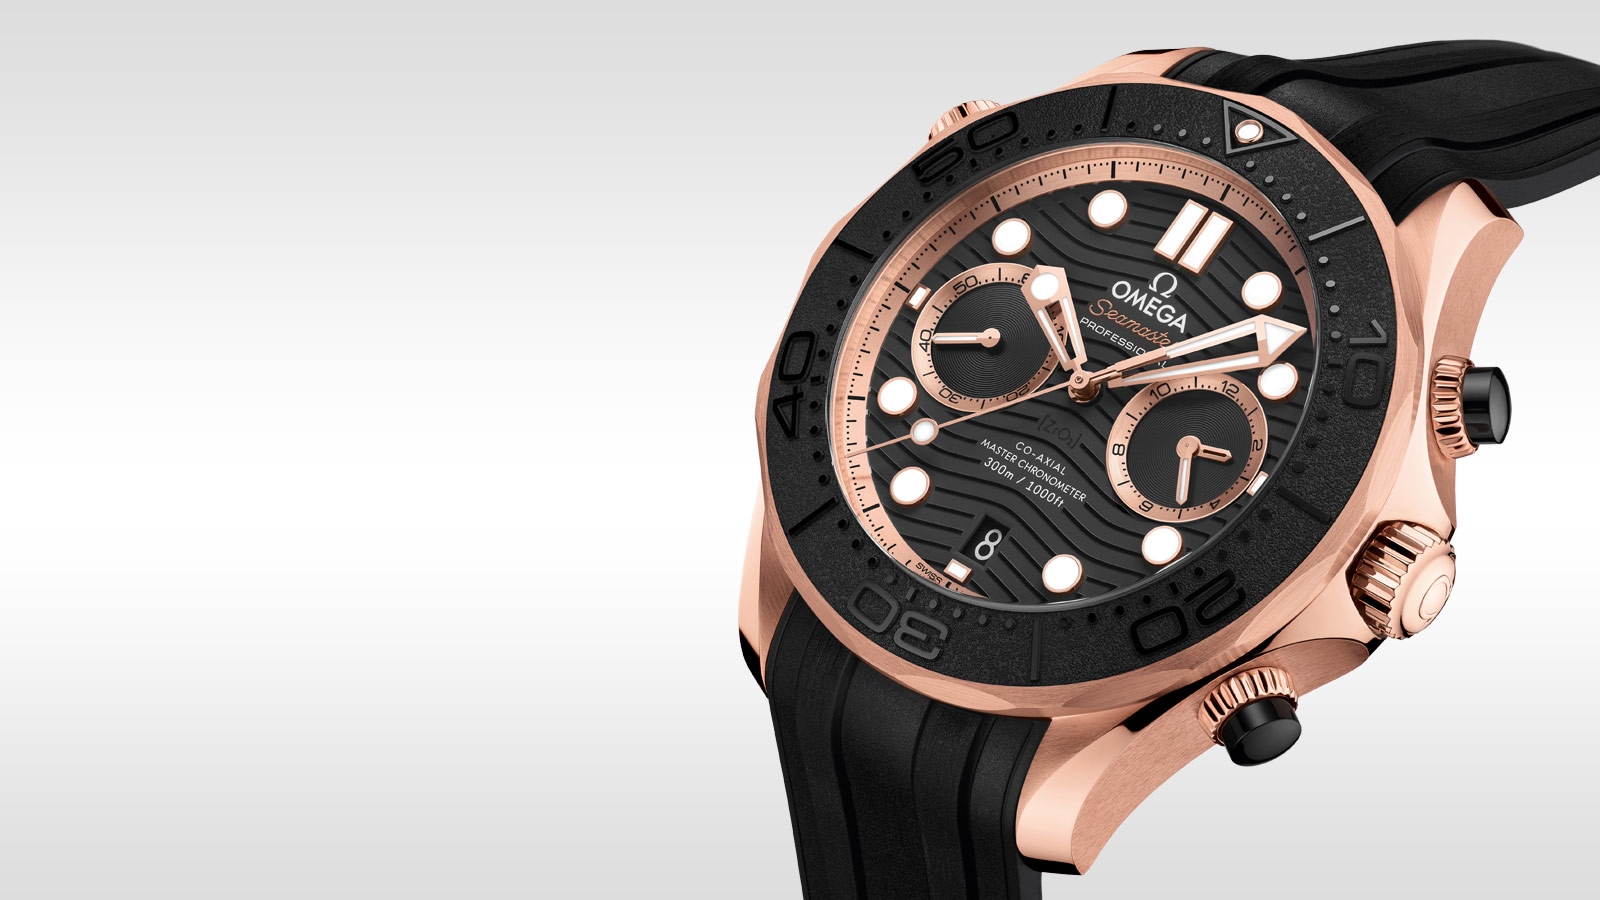 Seamaster Diver 300 M Diver 300M Omega Co‑Axial Master Chronometer Chronograph 44 mm - 210.62.44.51.01.001 - Visualizzare 2